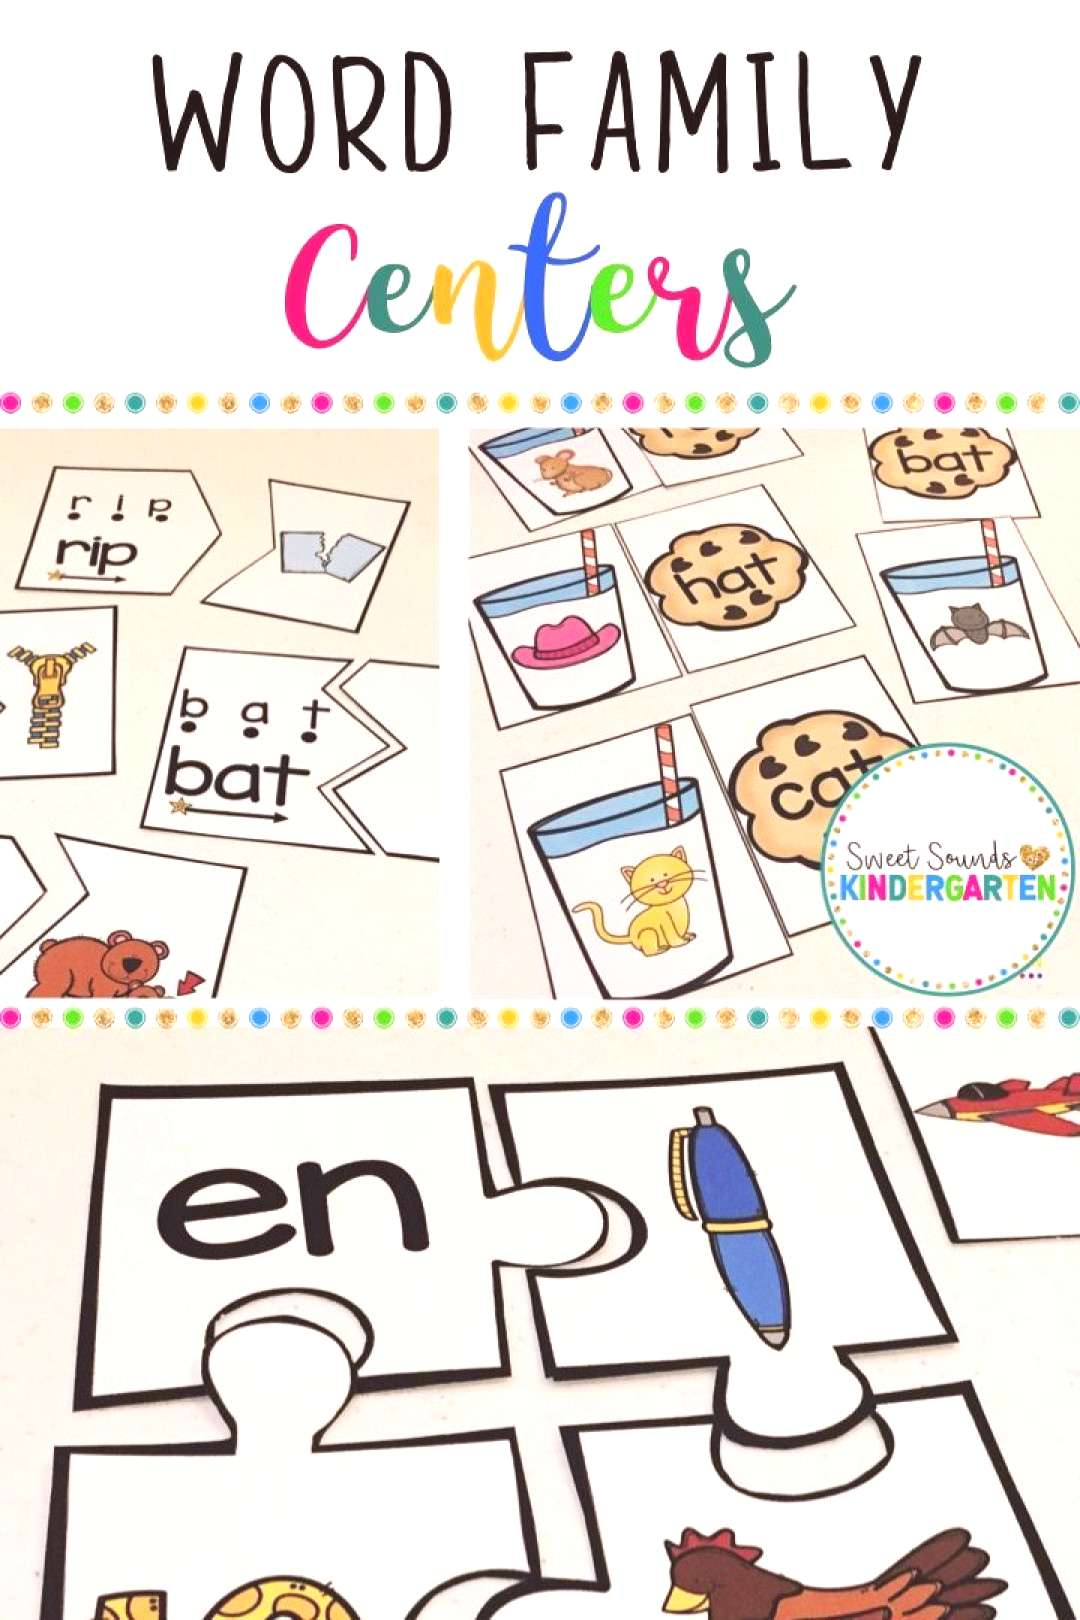 Word Family Centers CVC Words and Word Family Practice Phonics amp word family centers! This includ